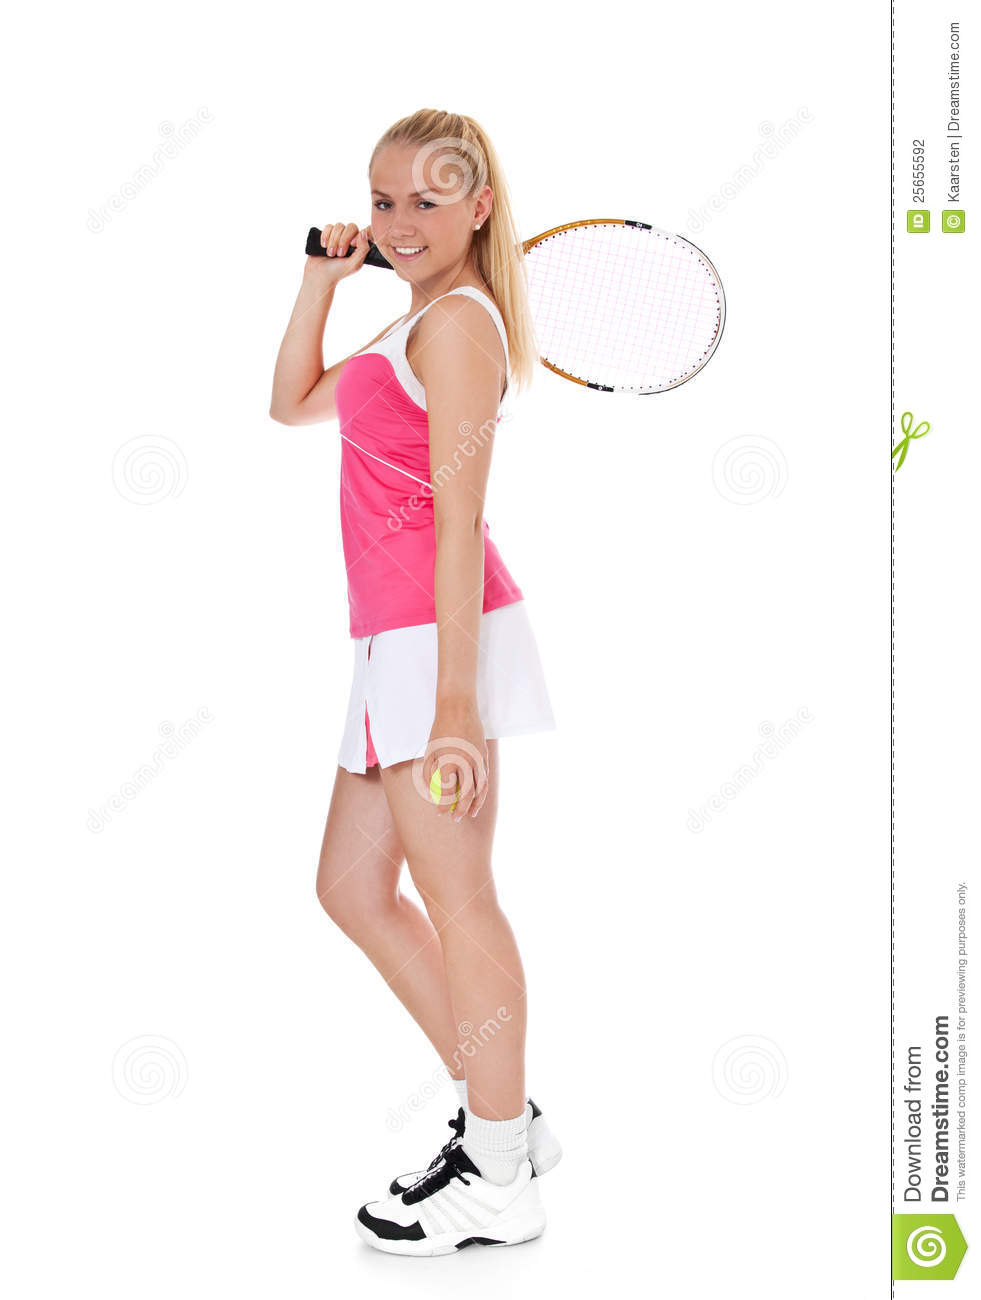 Full length shot of an attractive female tennis player all on white